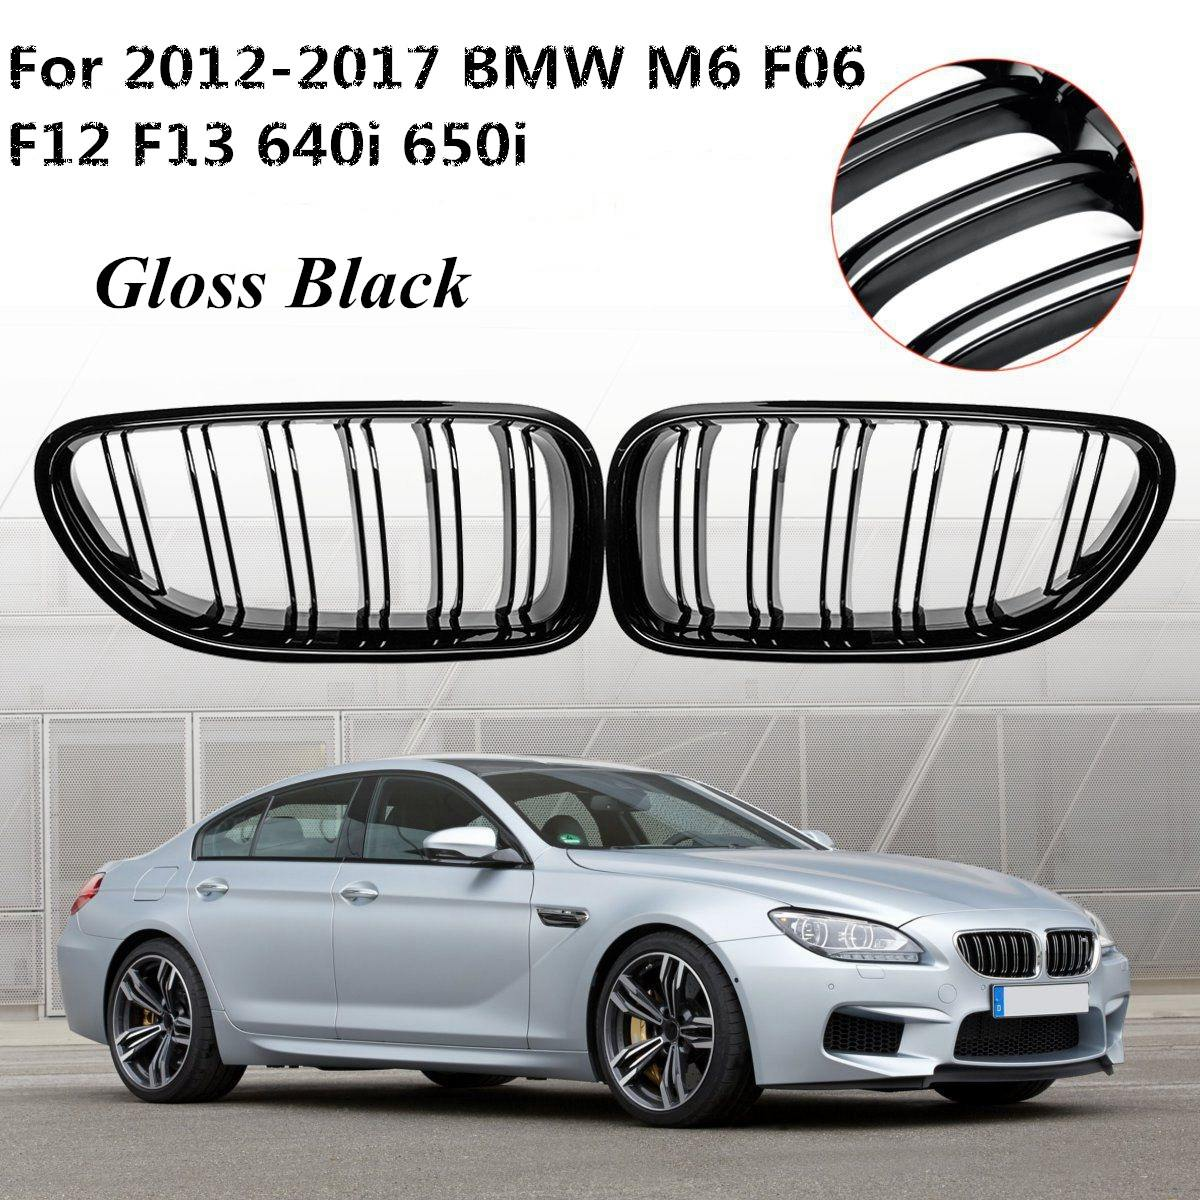 Pair Auto Gloss Black Front Grill Grilles Exterior Replacement For BMW M6 640i 650i F06 F12 F13 2012 2013 2014 2015 2016 2017Pair Auto Gloss Black Front Grill Grilles Exterior Replacement For BMW M6 640i 650i F06 F12 F13 2012 2013 2014 2015 2016 2017